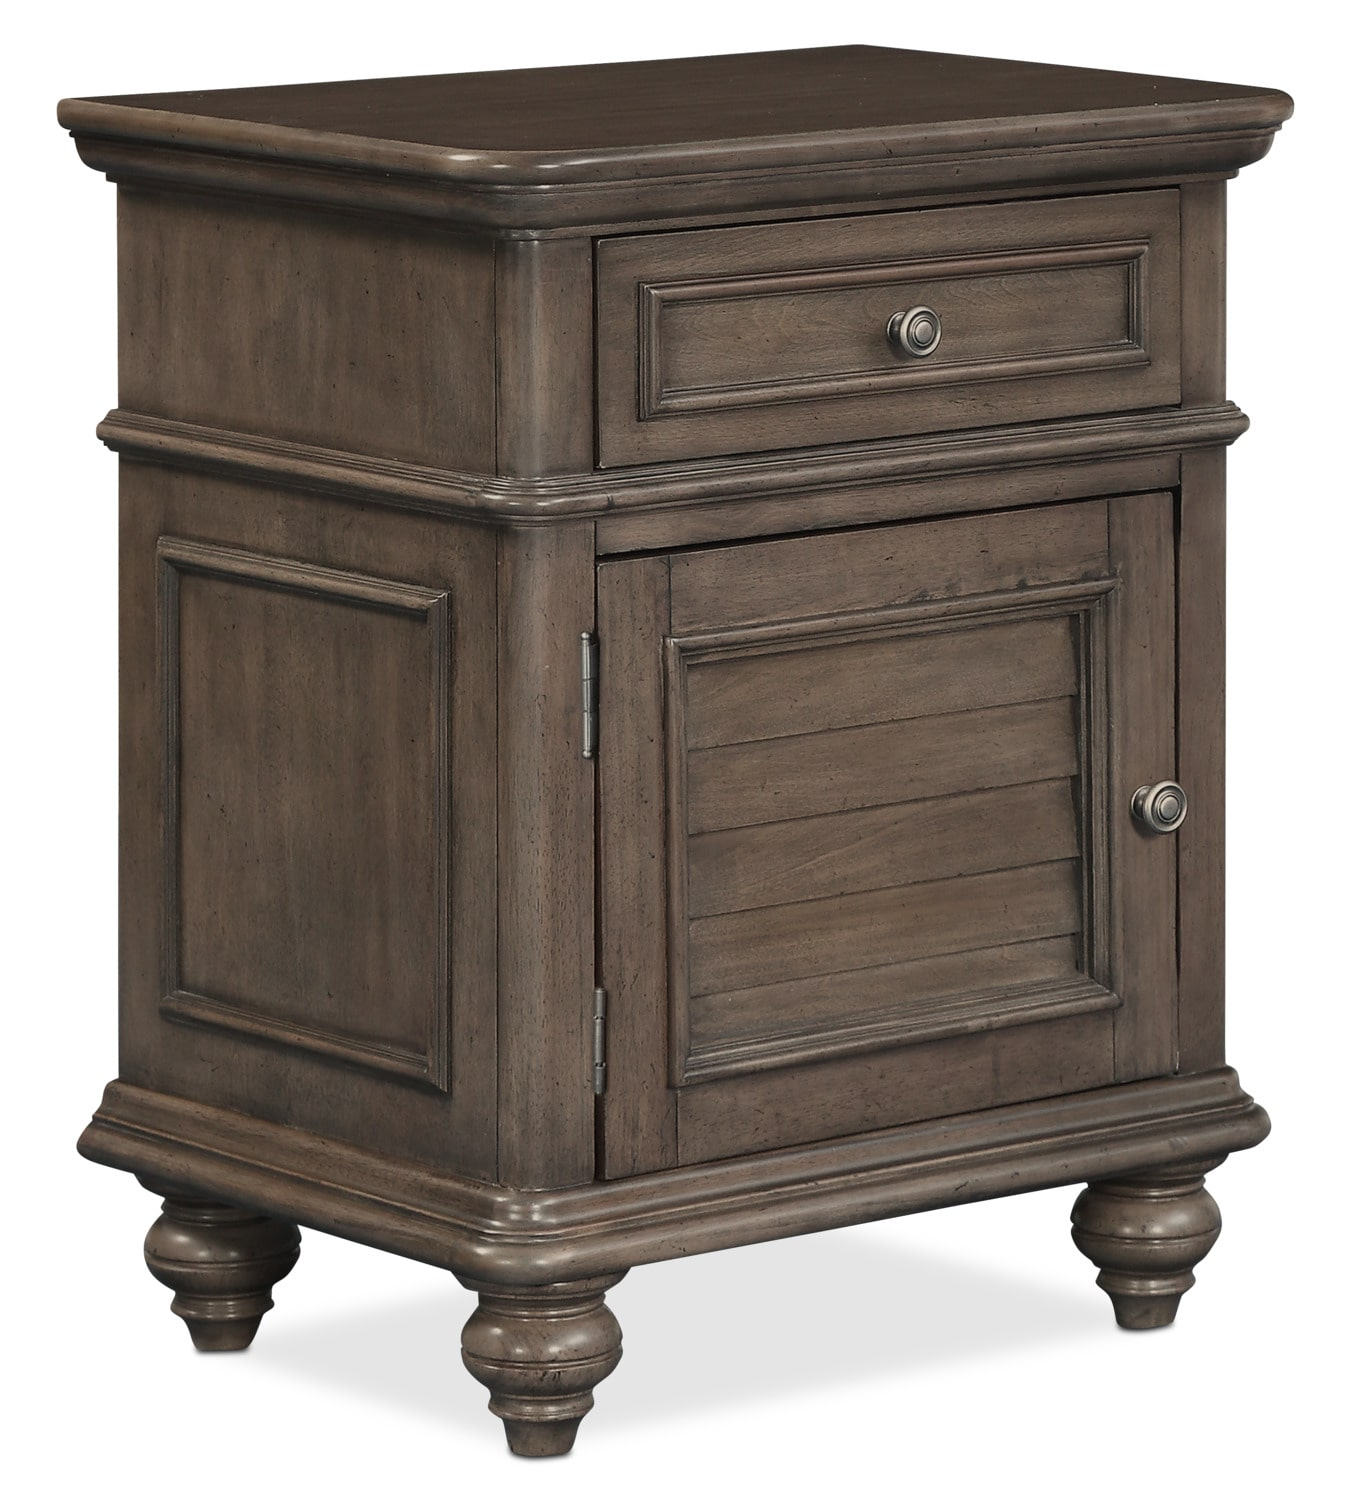 Bedroom Furniture - Charleston Nightstand